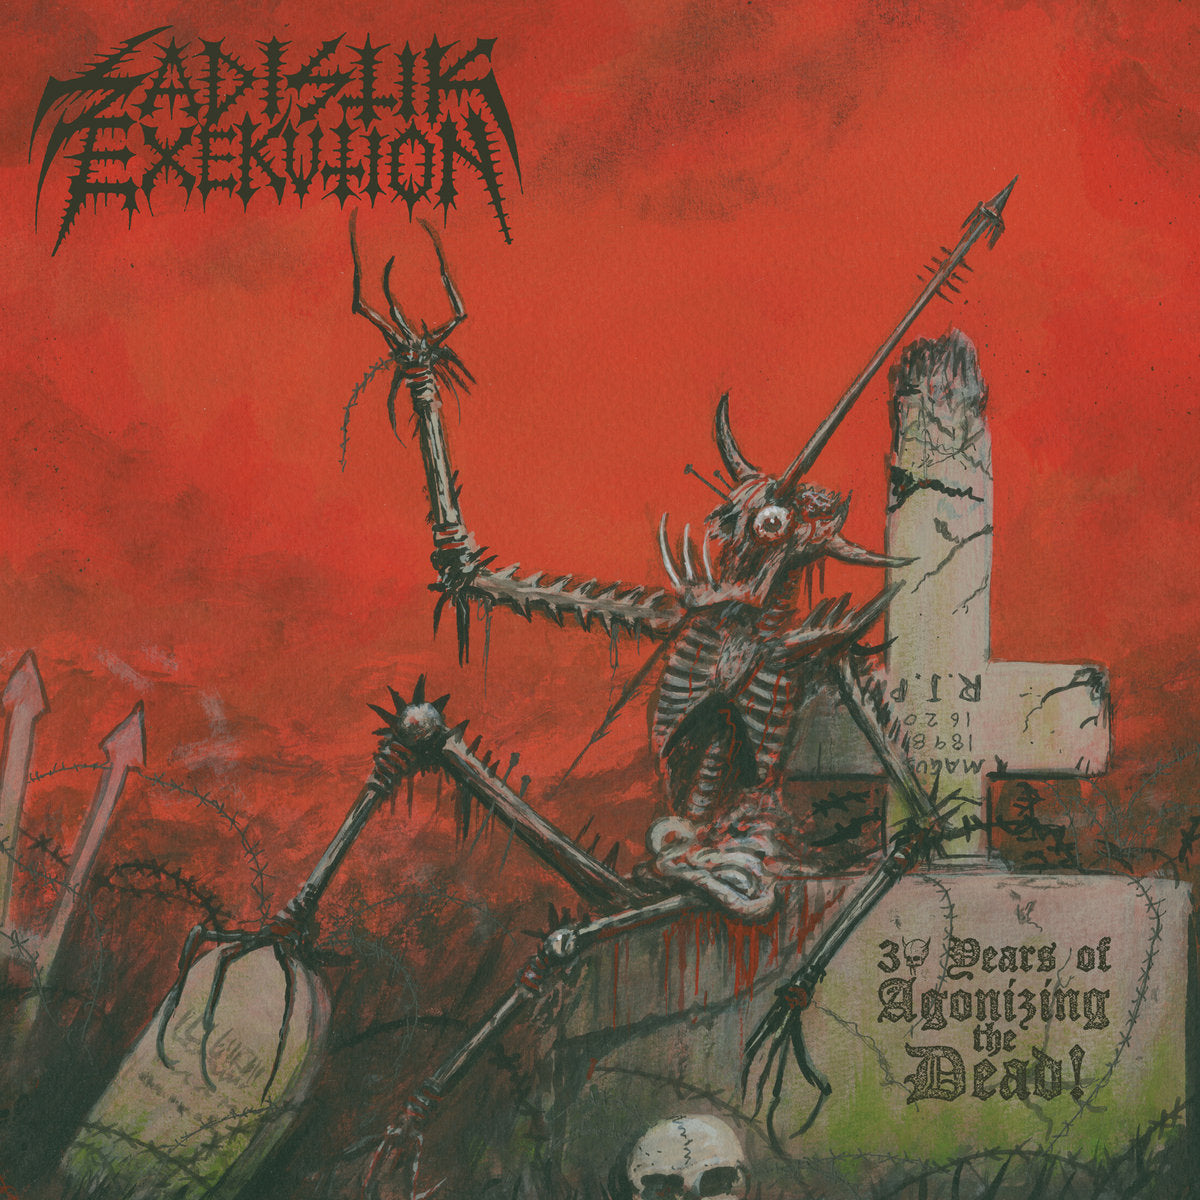 Sadistik Exekution - 30 Years of Agonizing the Dead LP